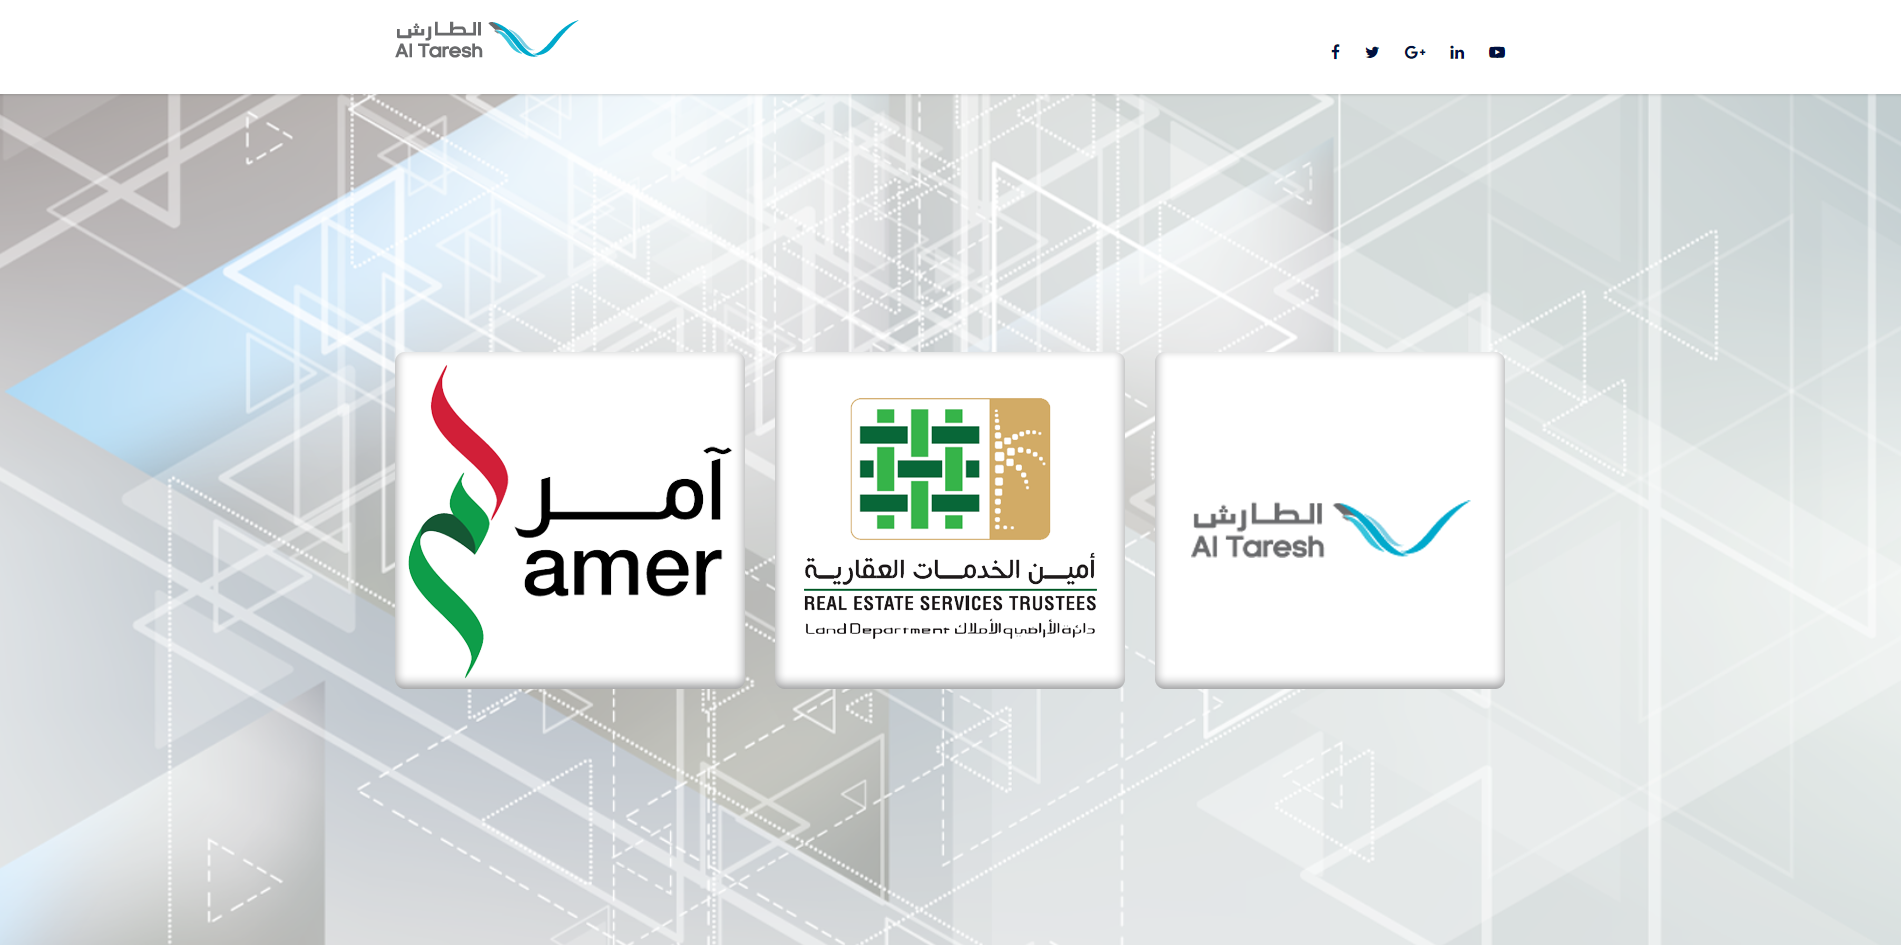 altaresh-group-portfolio